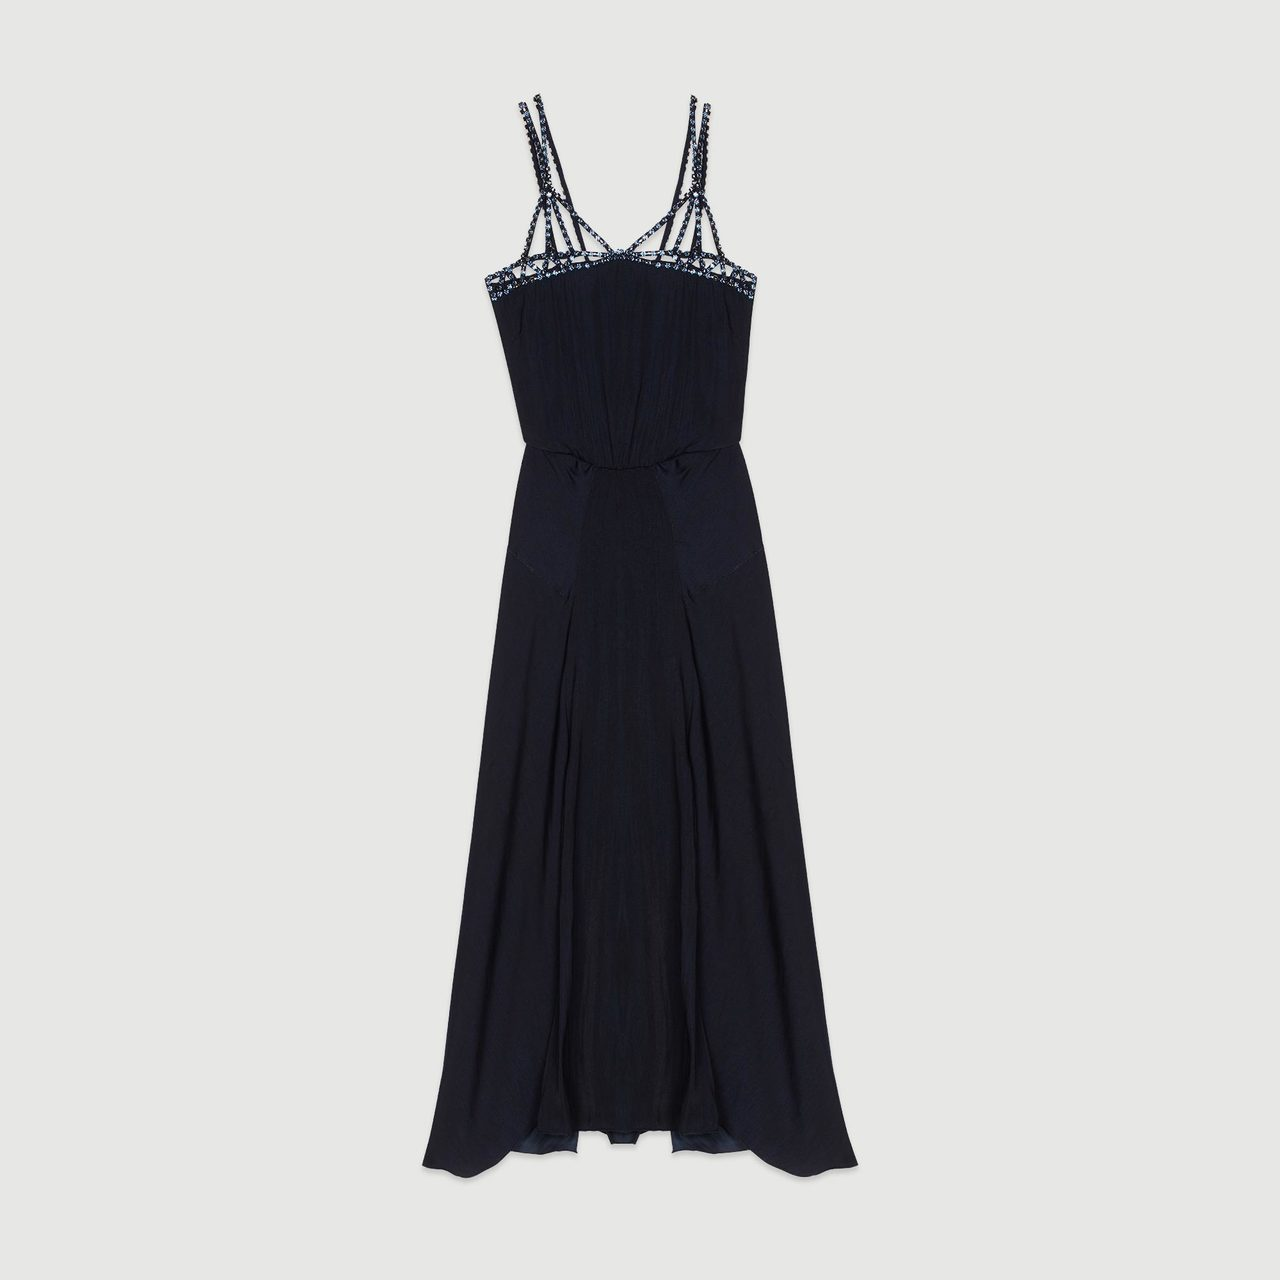 Midi Dress With Rhinestones - Navy